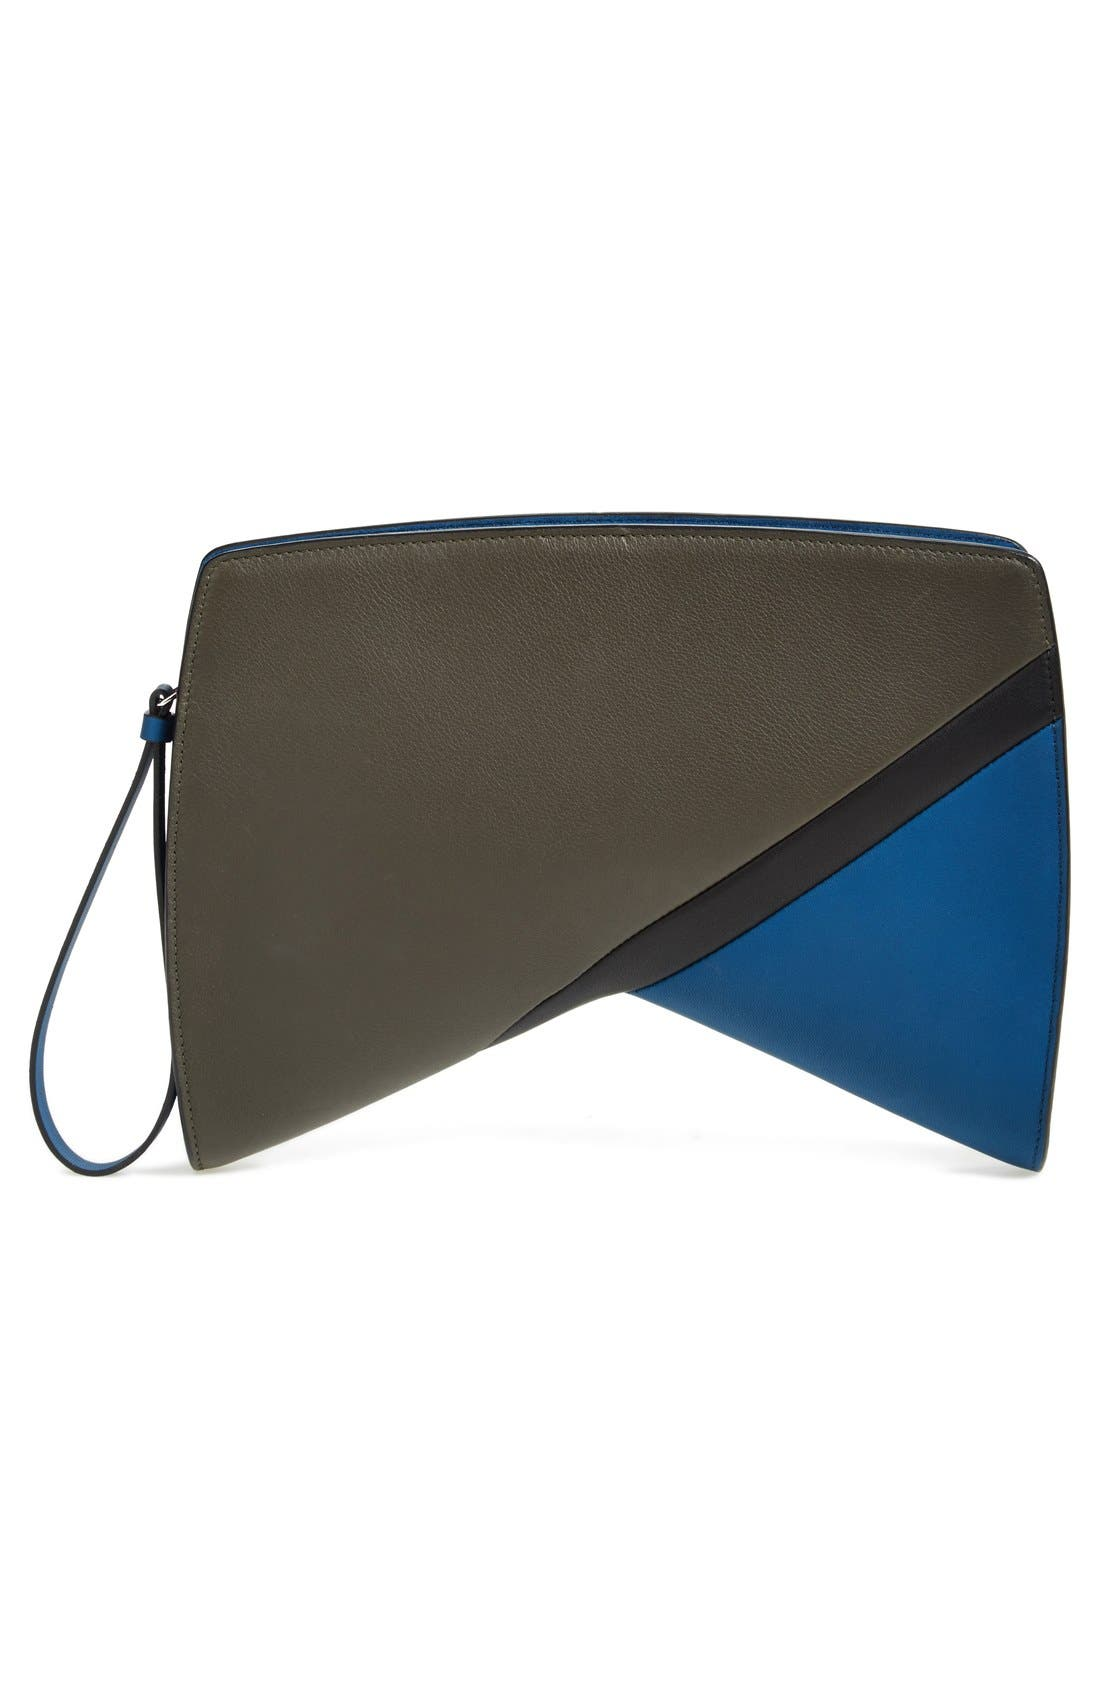 Alternate Image 4  - Narciso Rodriguez 'Boomerang' Leather Clutch